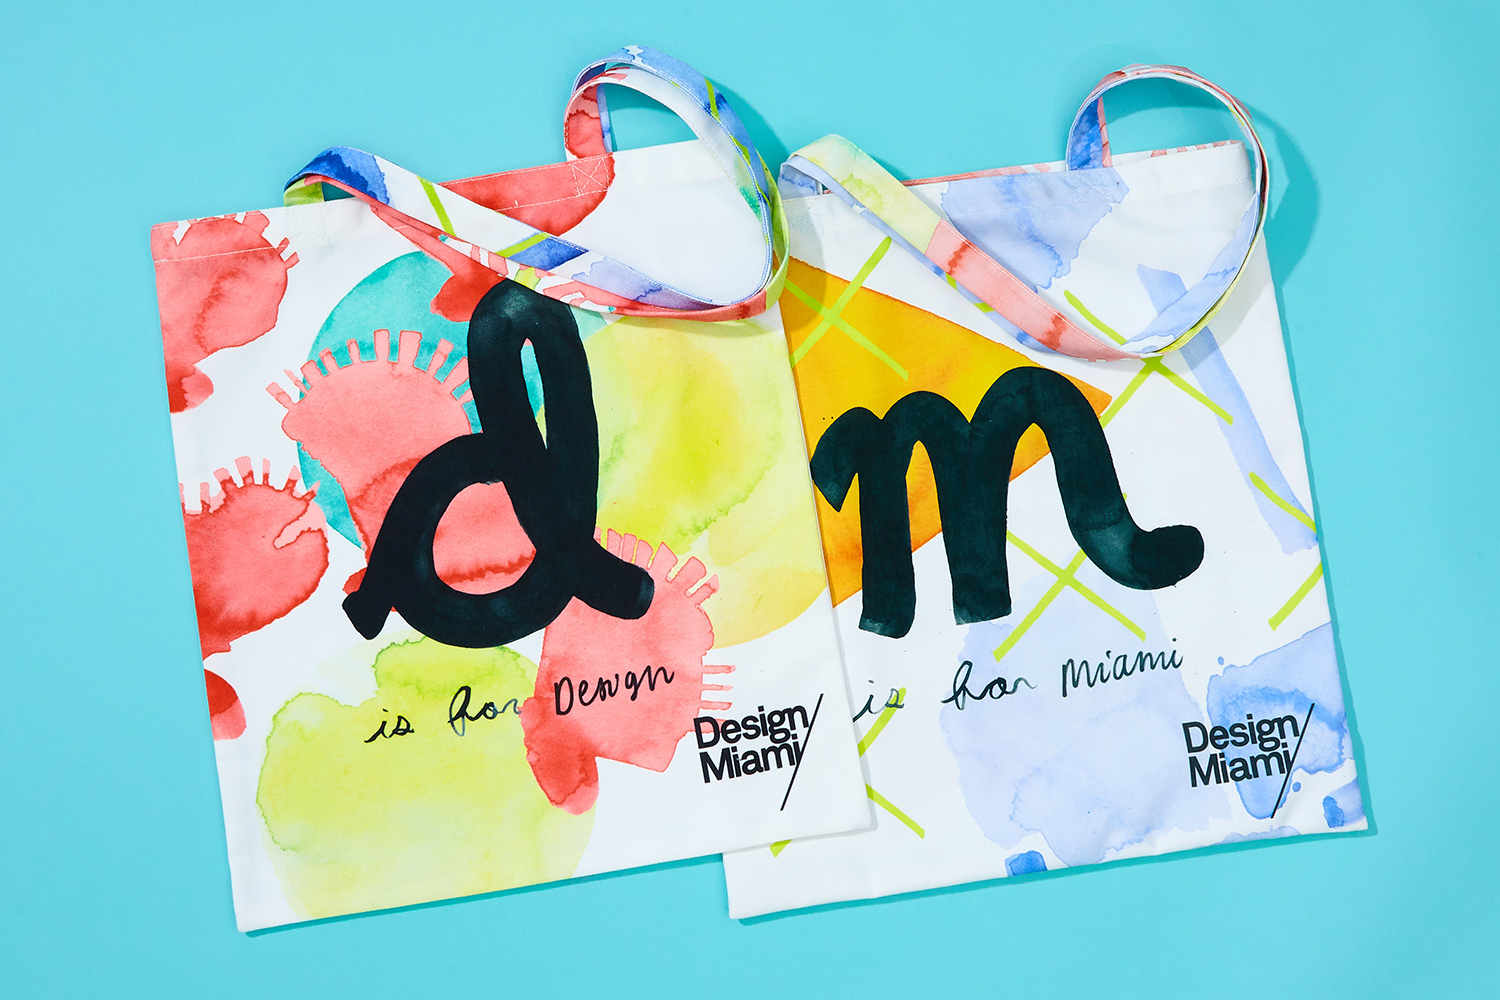 Progress Packaging Design Miami Dye Sublamation Print Tote Event Bag Production